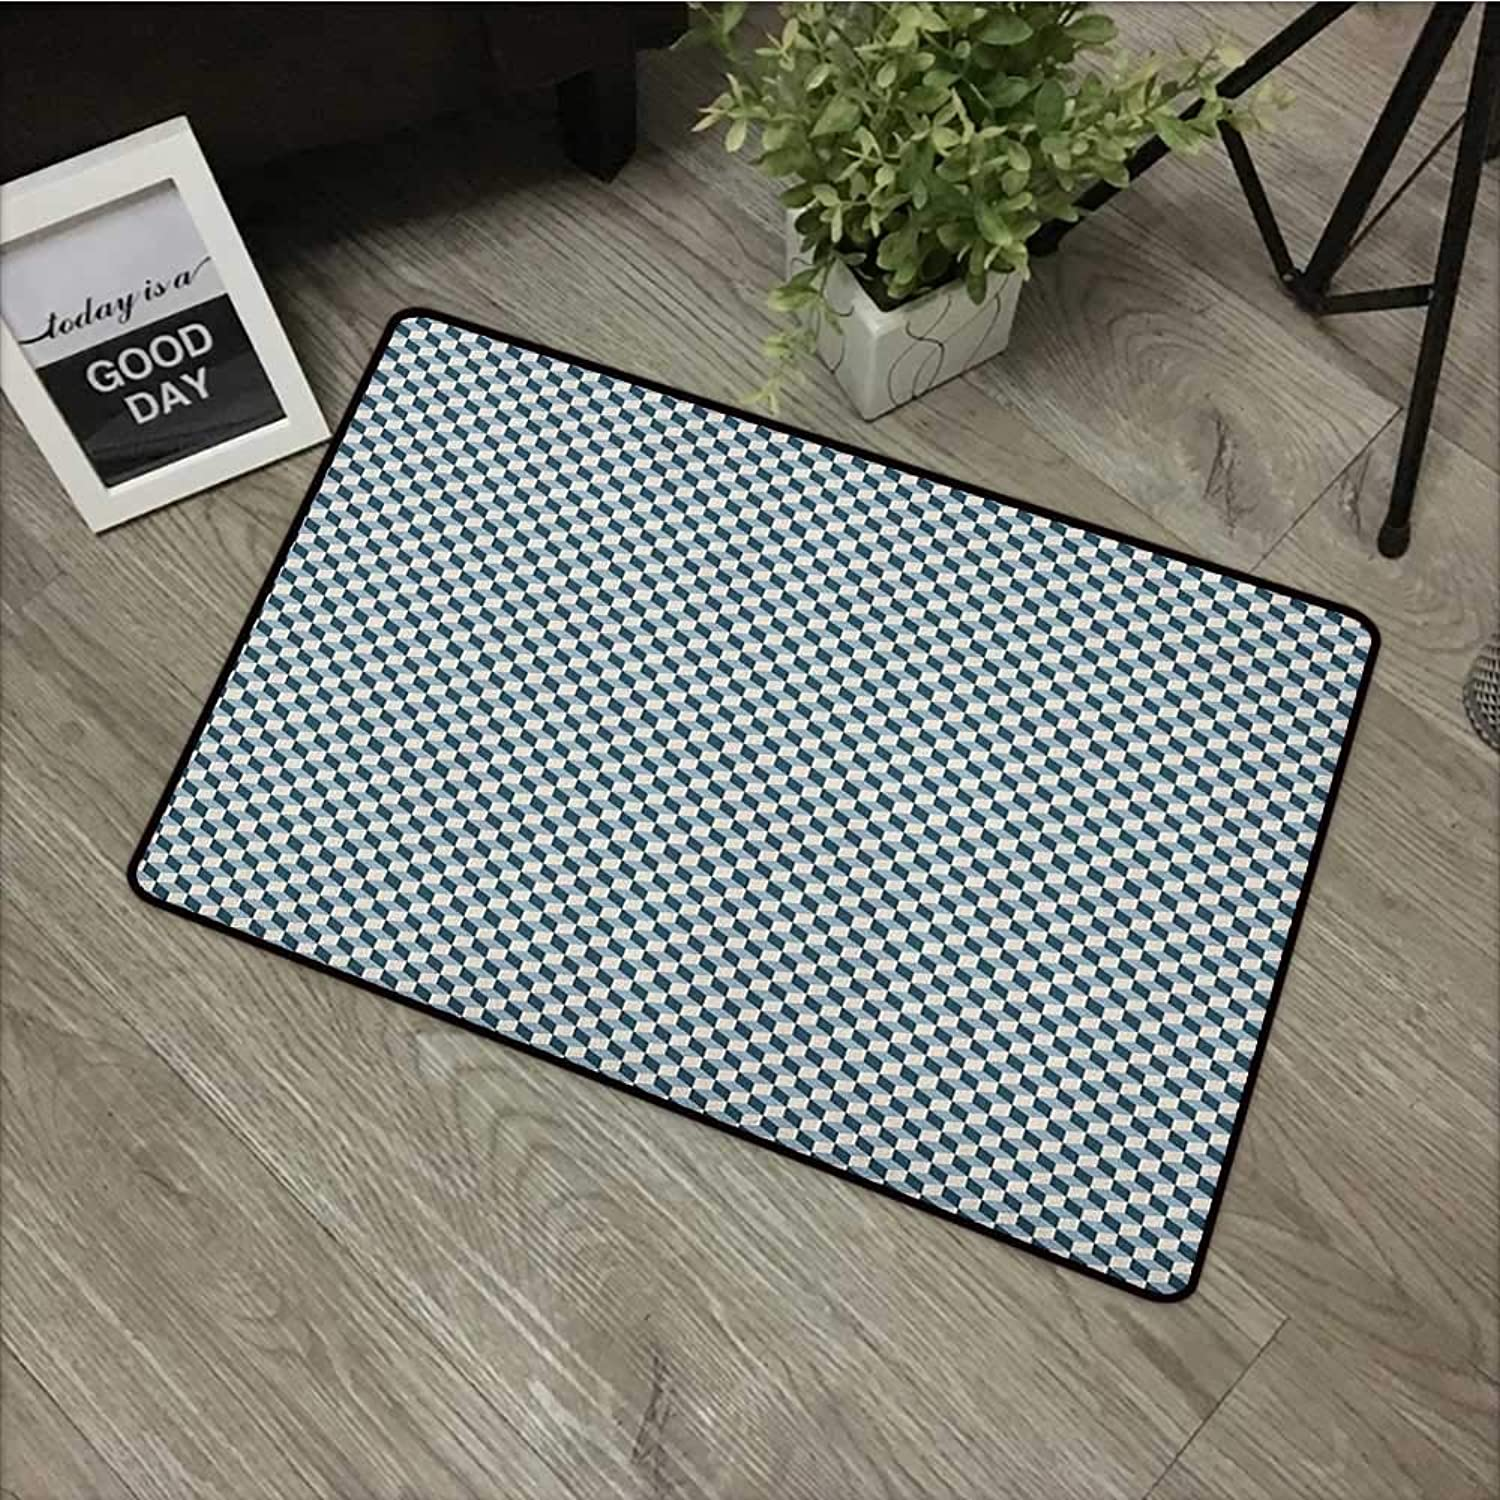 Door mat W35 x L59 INCH Geometric,3D Effect with Stacked Cubes Pattern Grid Style Squares Arrangement, Pale bluee Dark bluee with Non-Slip Backing Door Mat Carpet